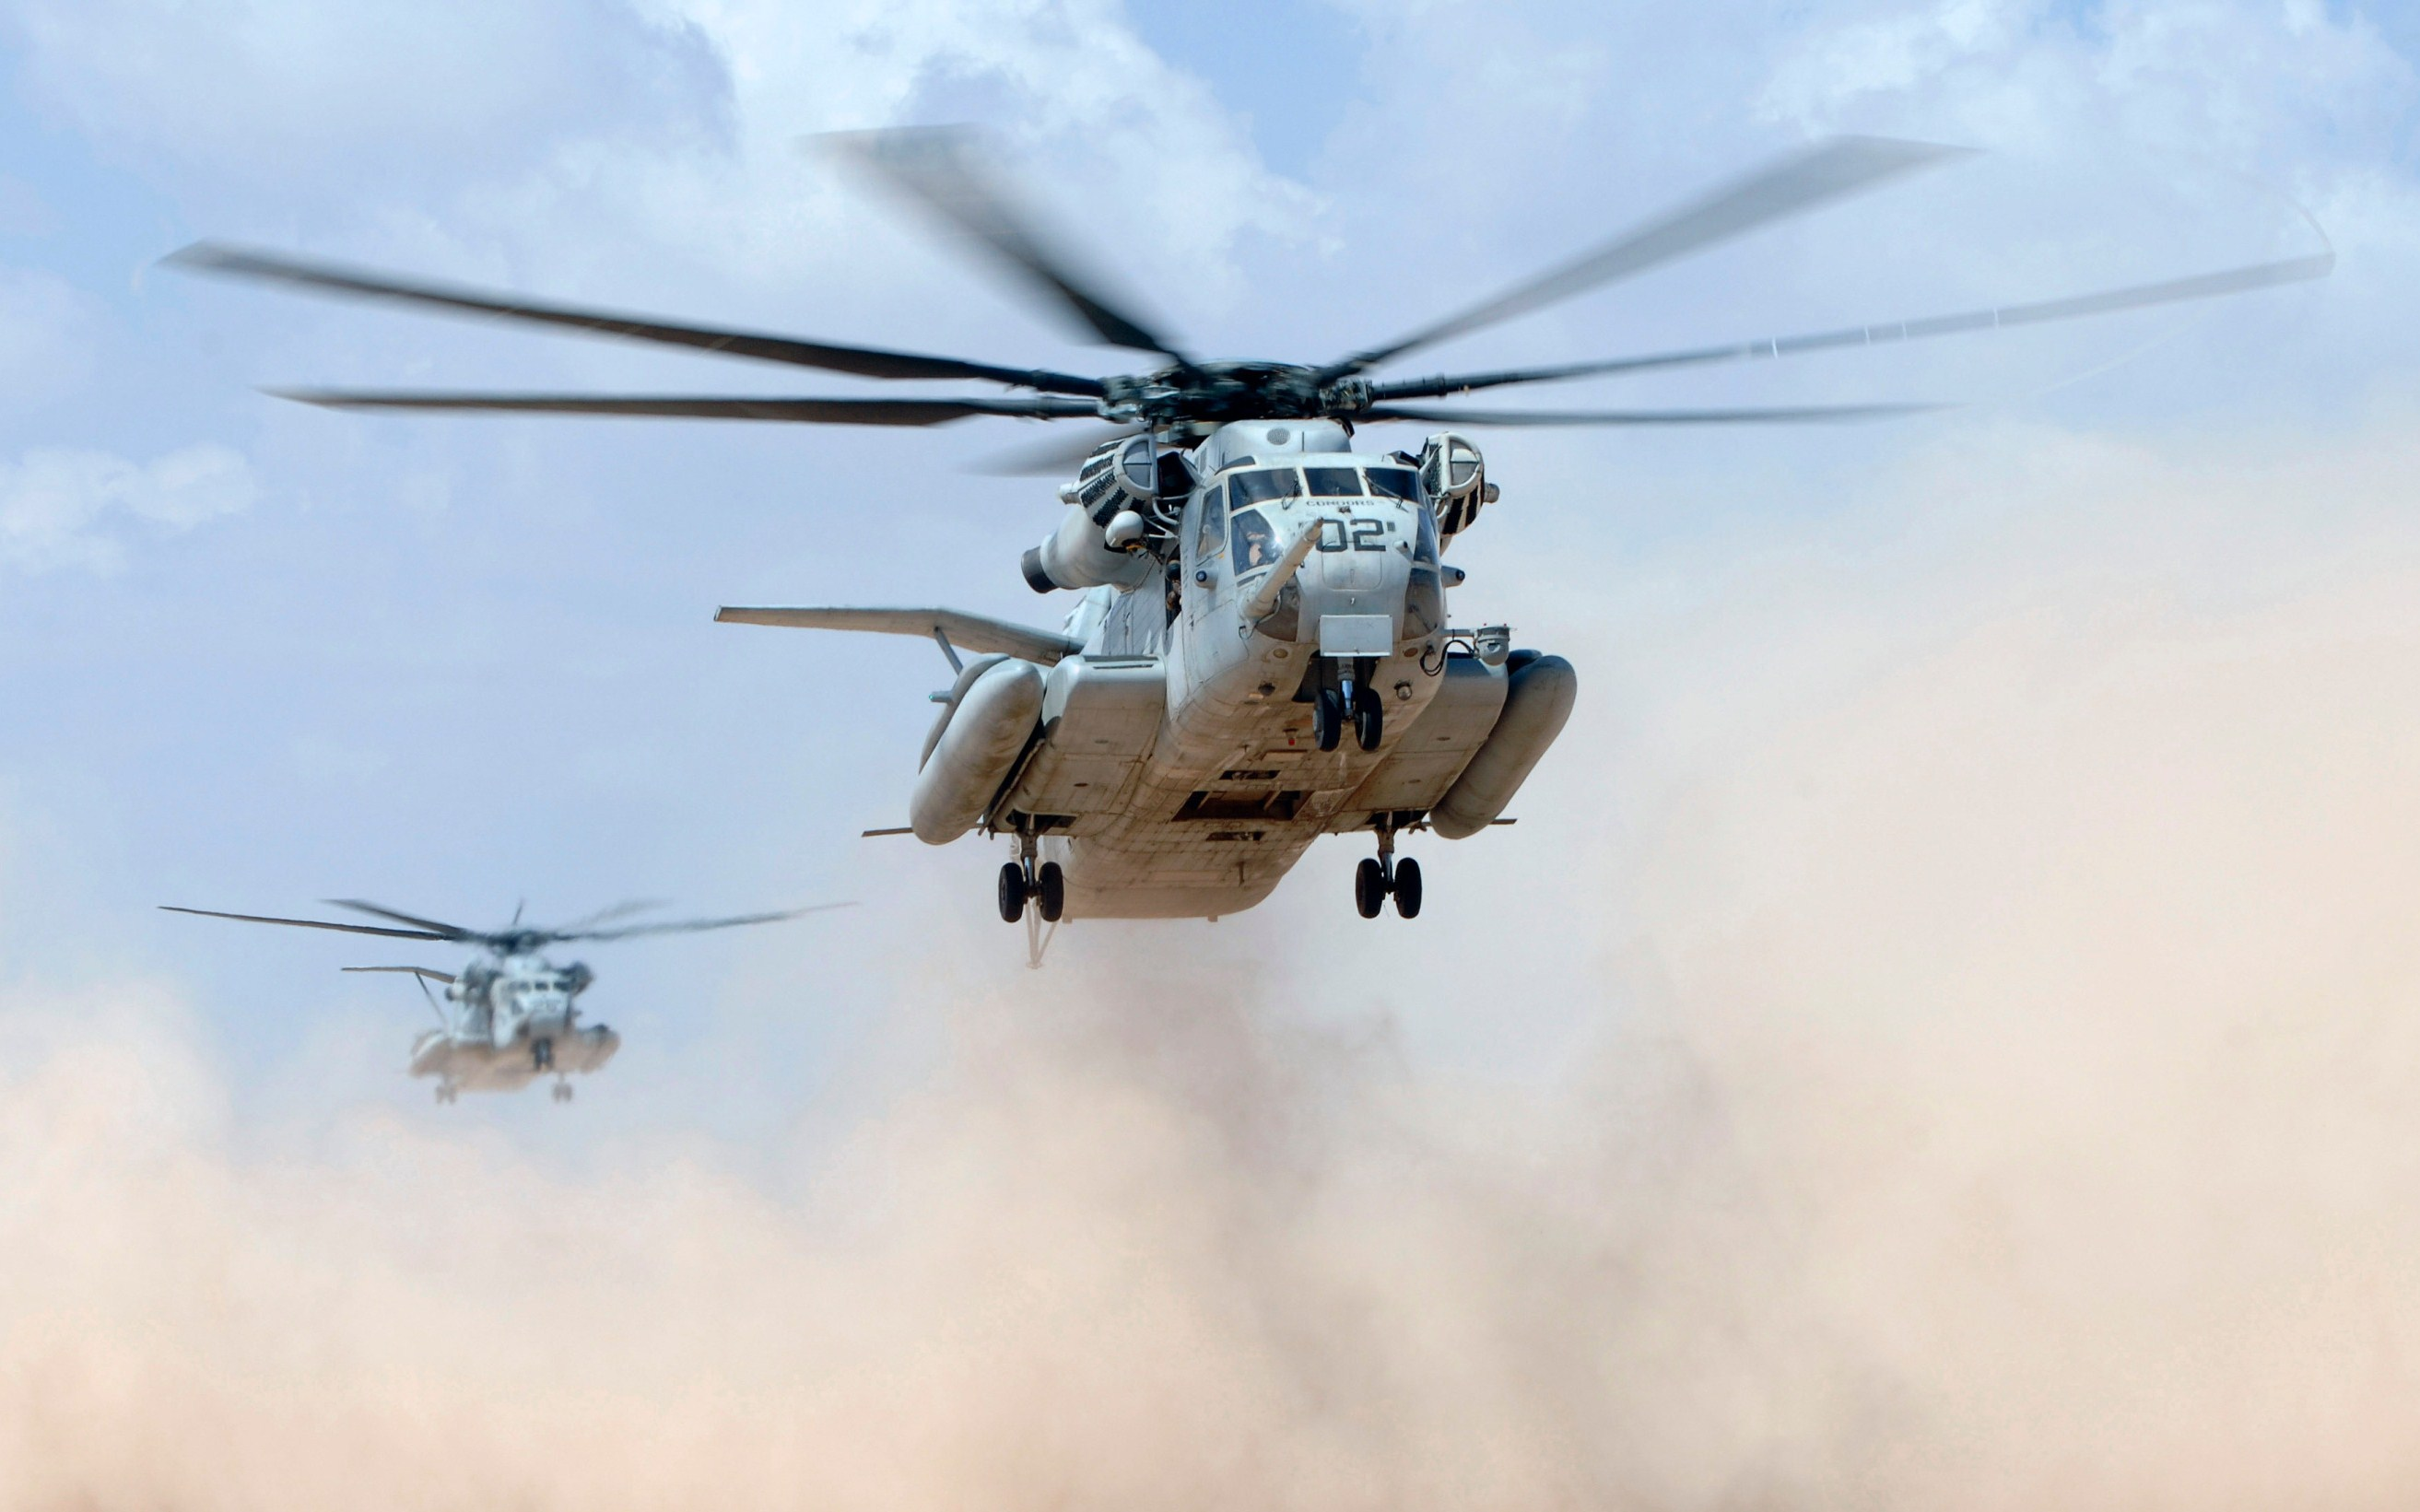 Sikorsky MH 53 Wallpapers and Background Images   stmednet 2626x1641